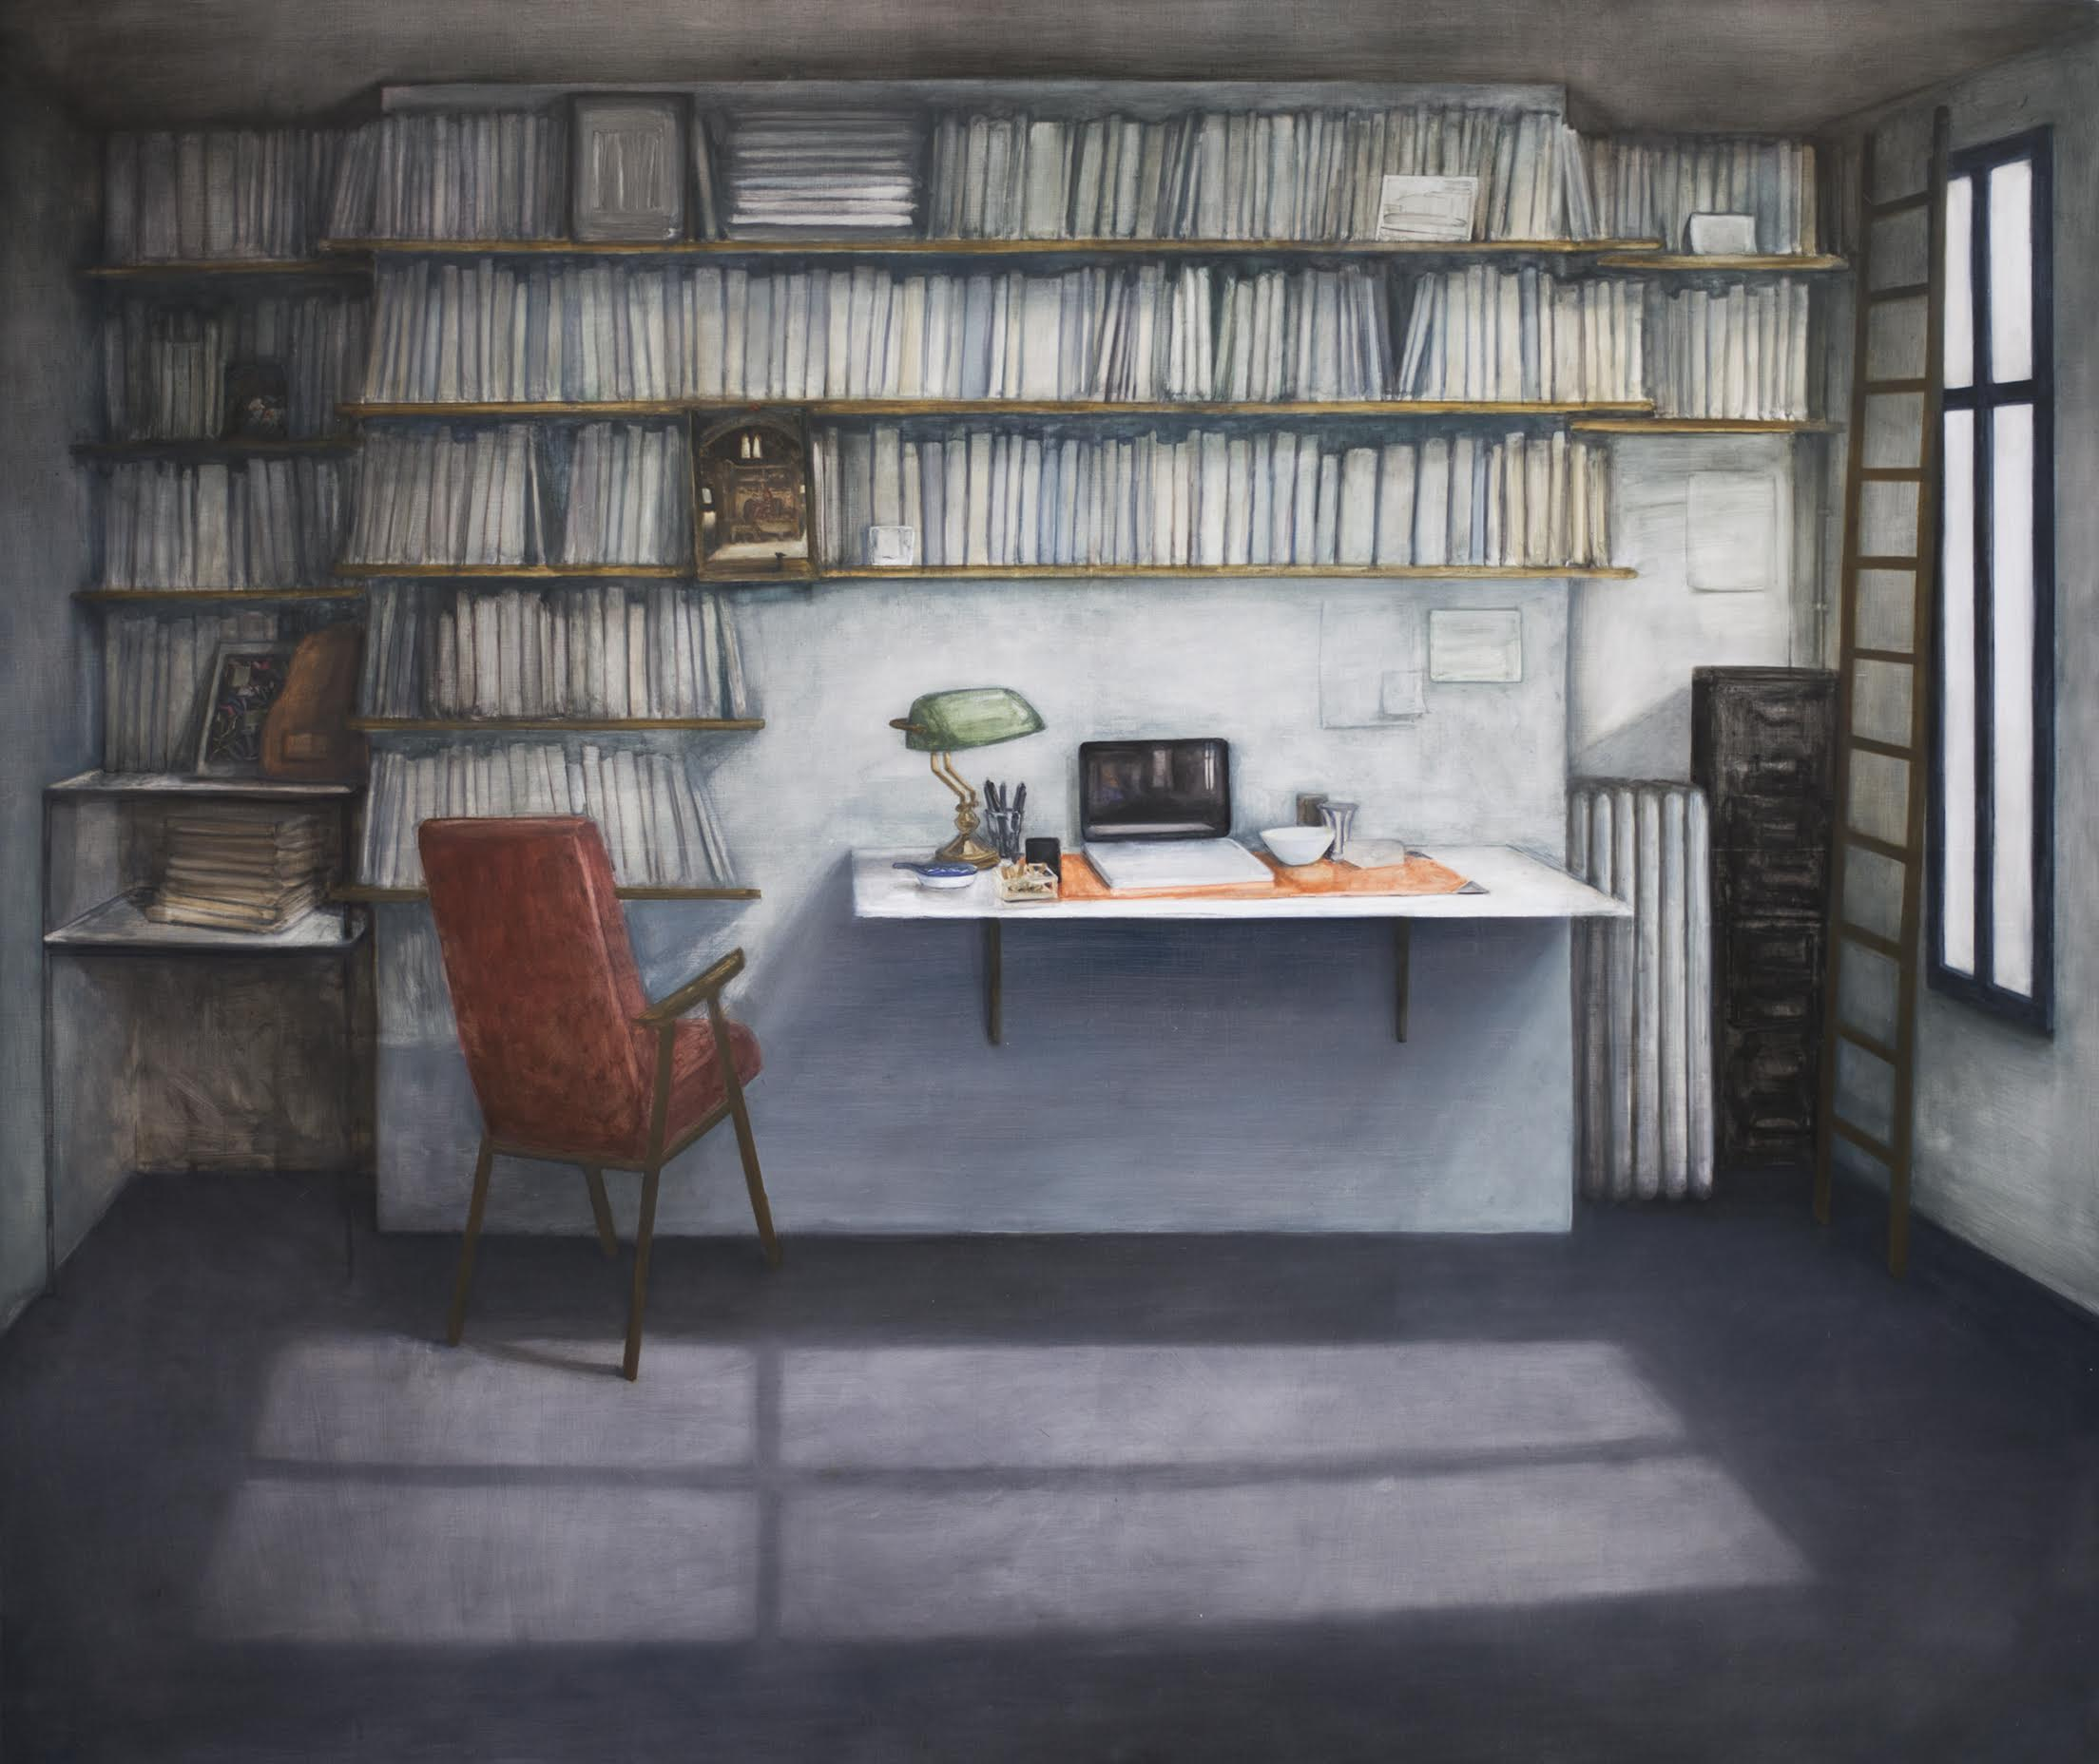 Les choses, Perec, 2017, 195 x 165 cm, oil on canvas